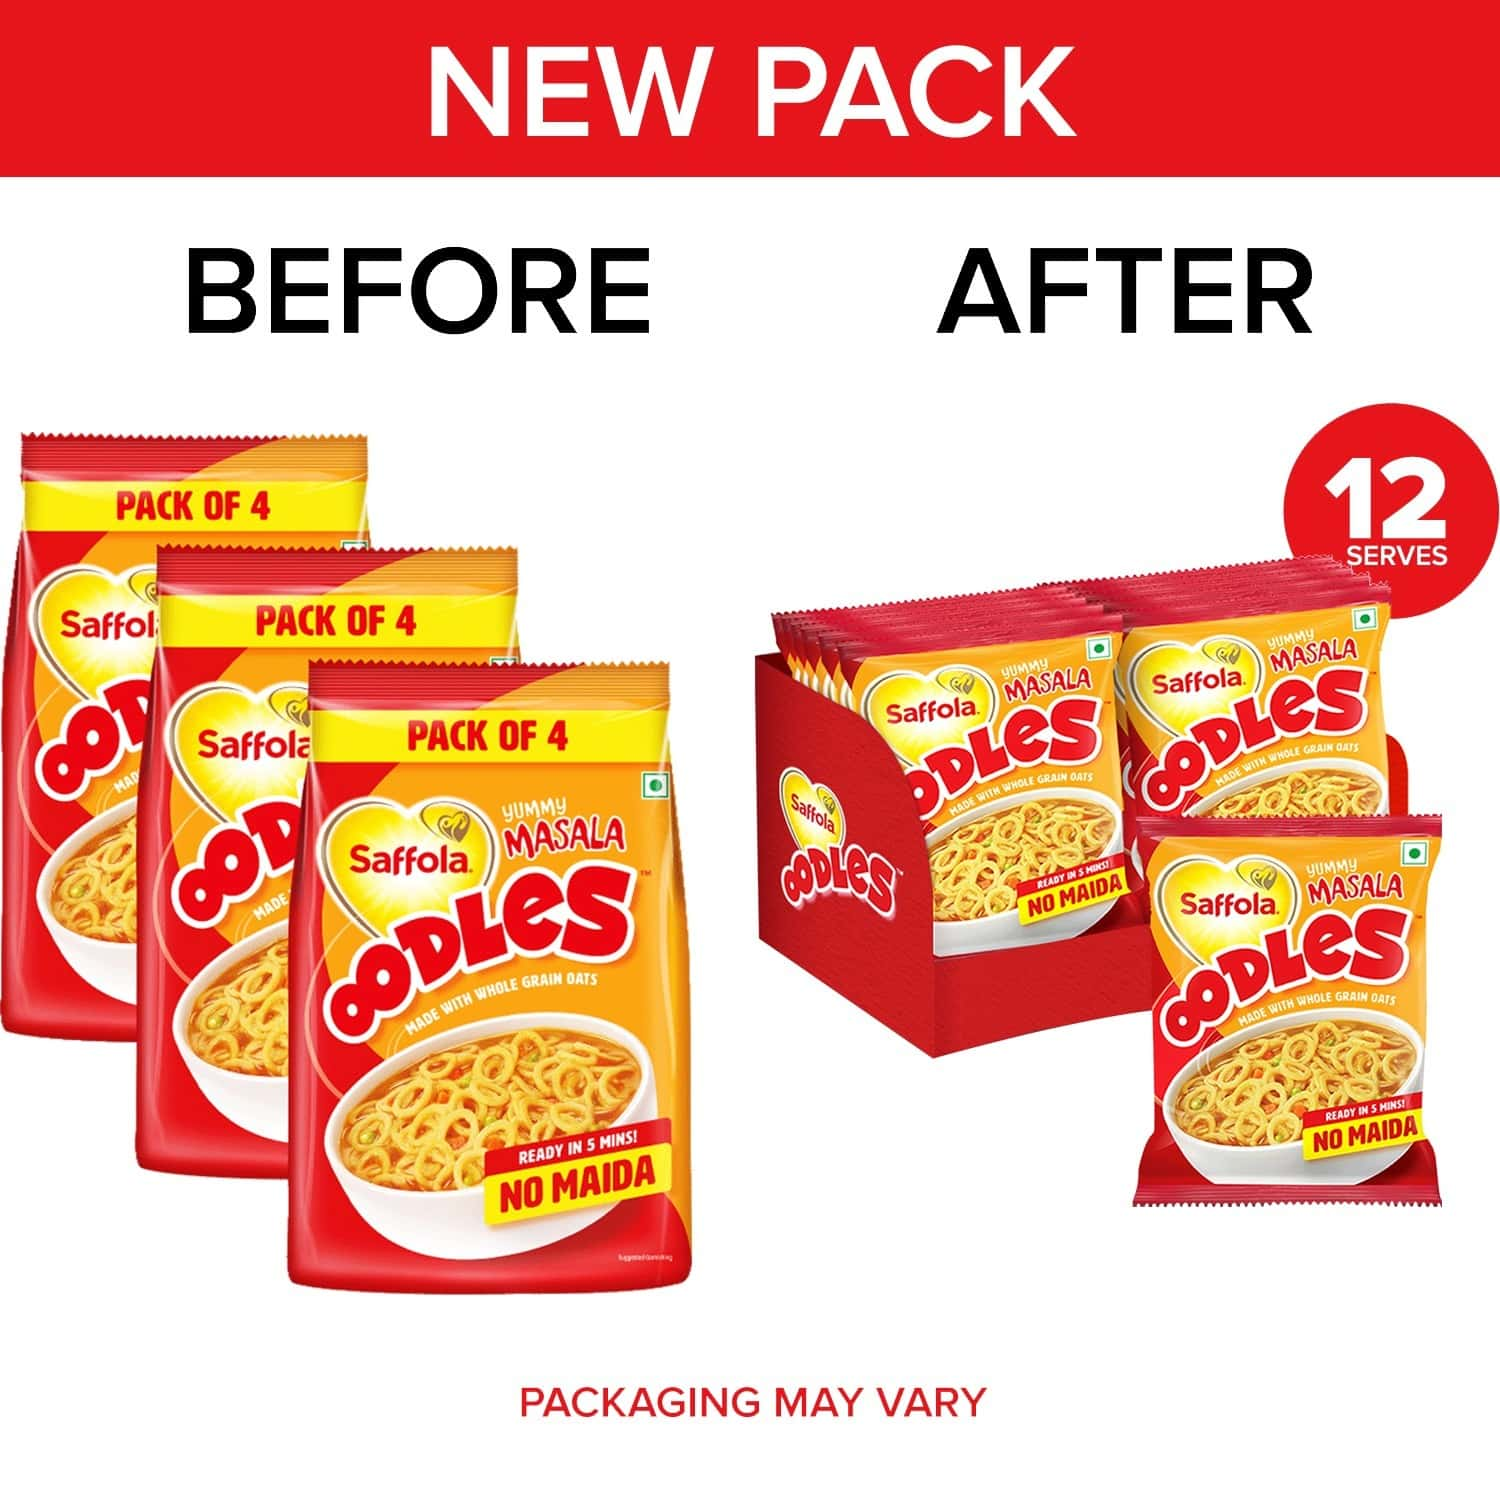 Saffola Oodles, Ring Noodles, Yummy Masala Flavour, No Maida, 3 X 184g Pouch (12 Packs)